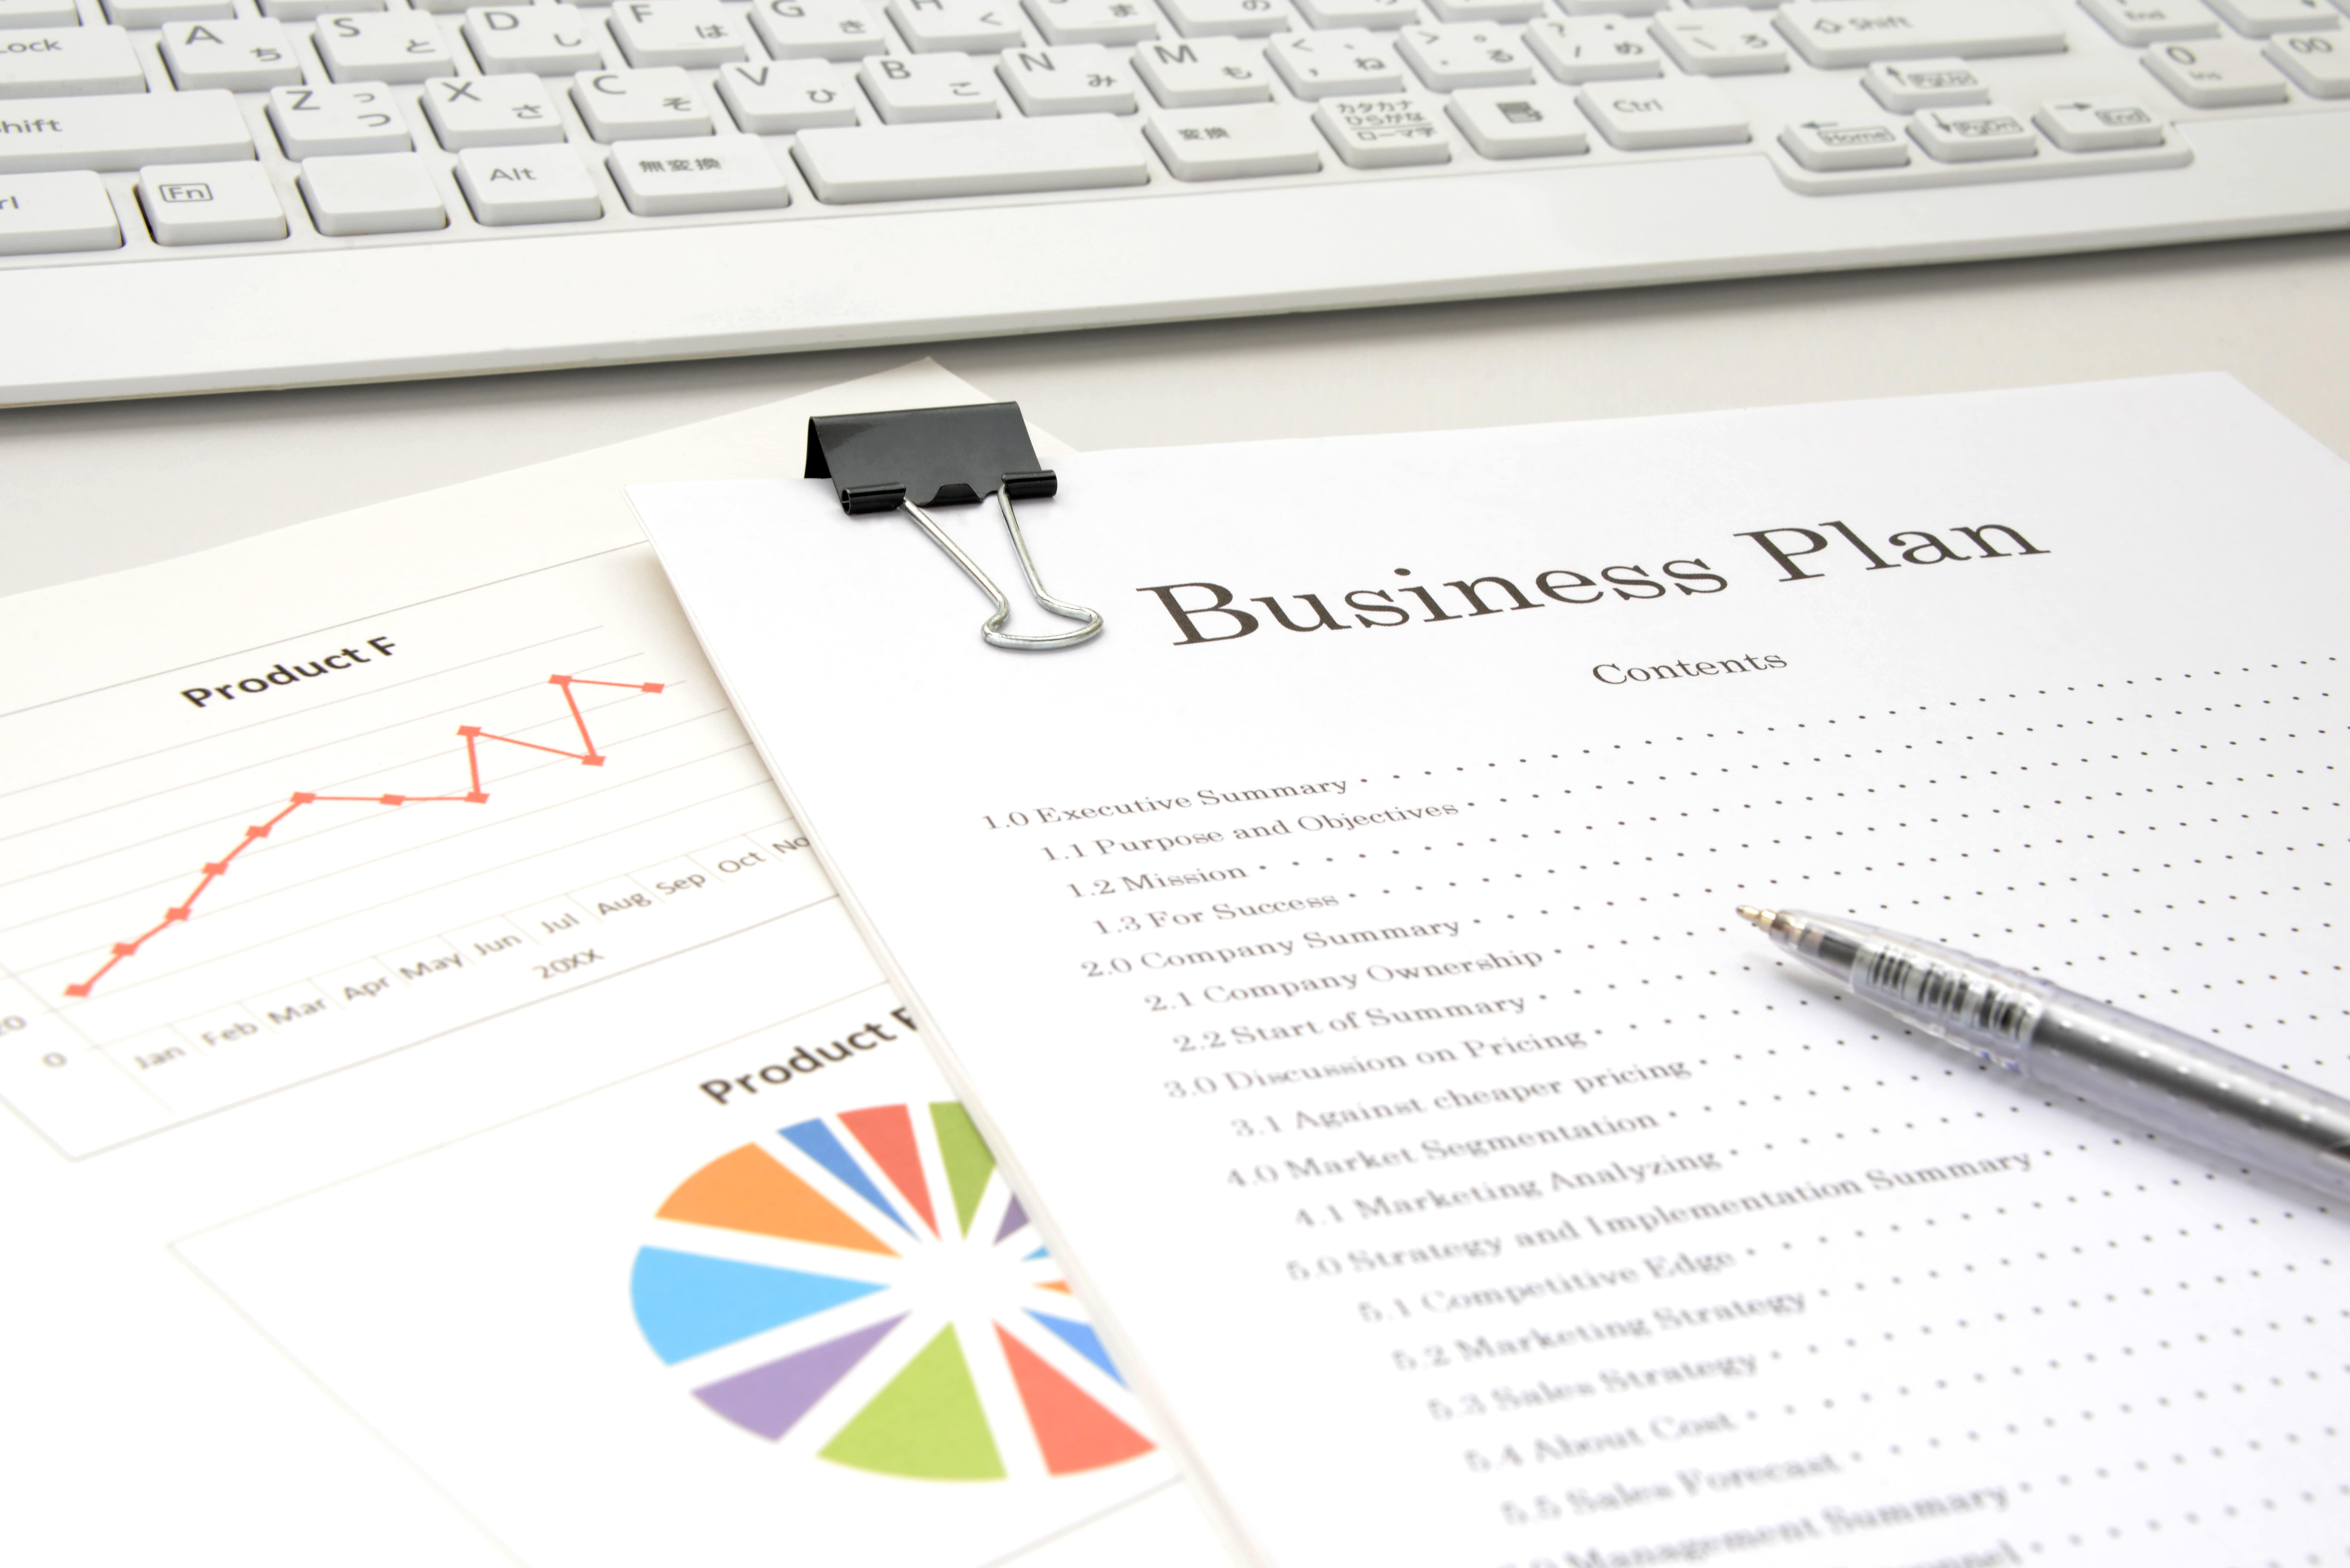 The Starting Point for an Effective Business Plan